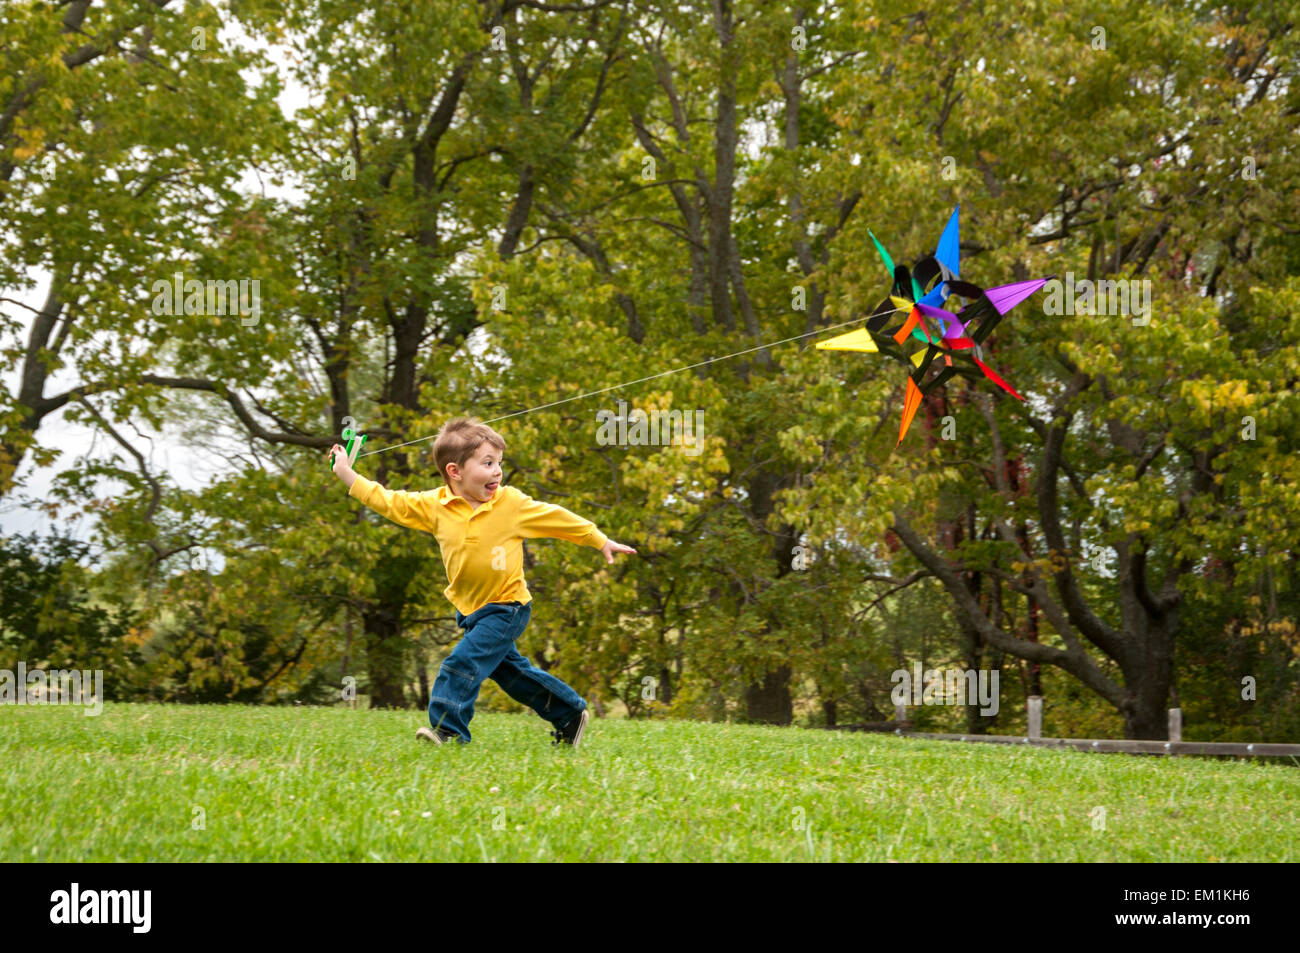 boy running with kite - Stock Image